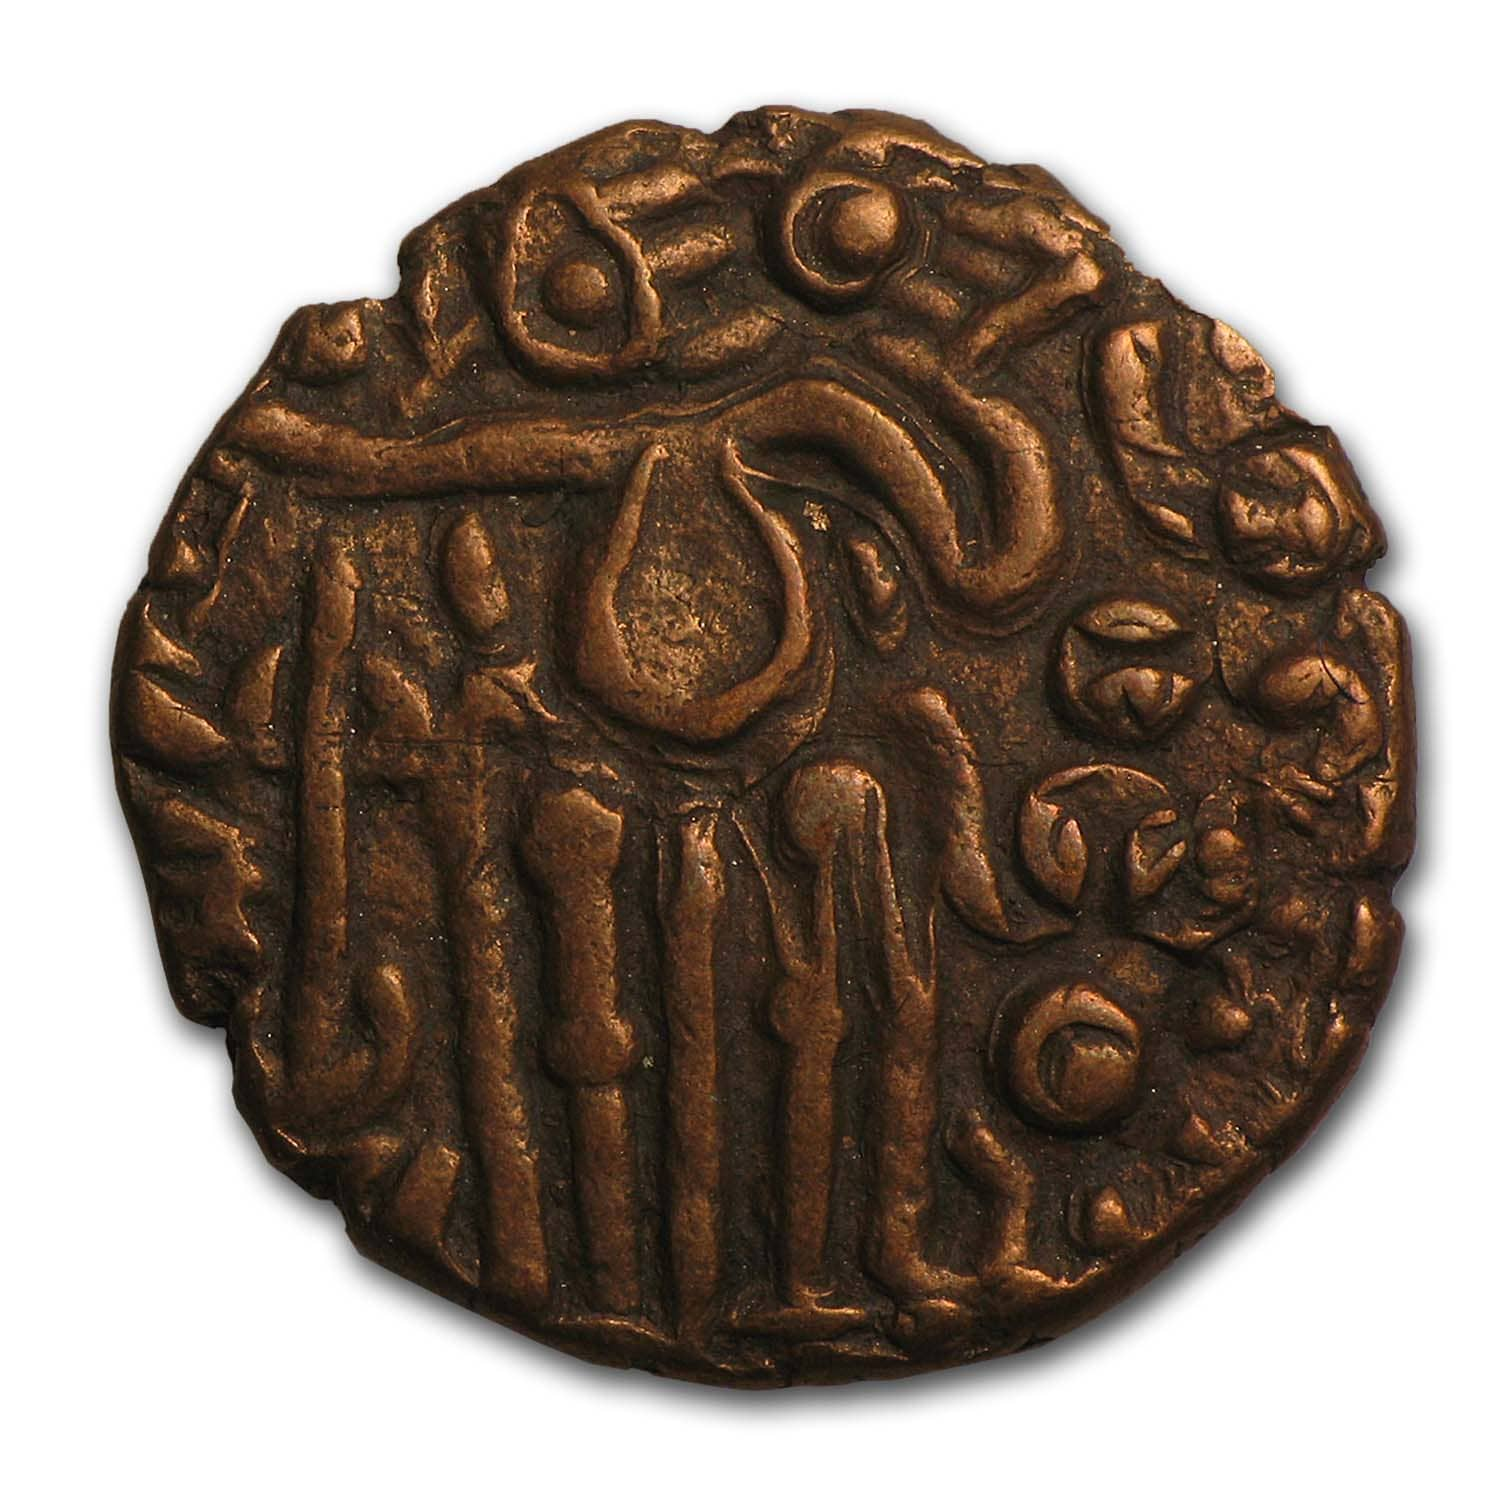 Ancient Silk Road Bronze Coin Collection